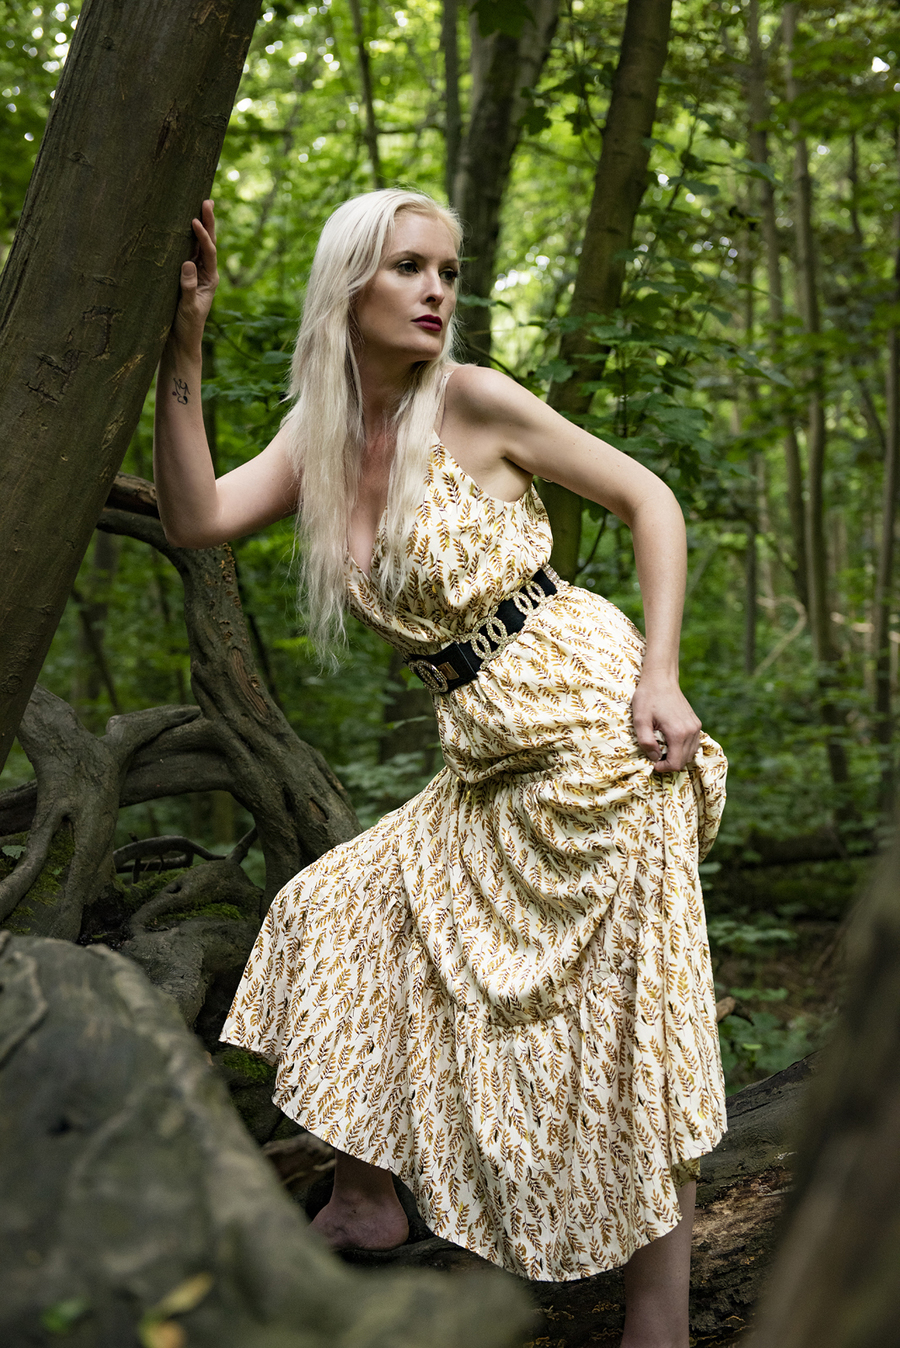 Fashion in nature  / Photography by Shane Finn, Model Hazel Holli / Uploaded 28th August 2021 @ 12:47 PM